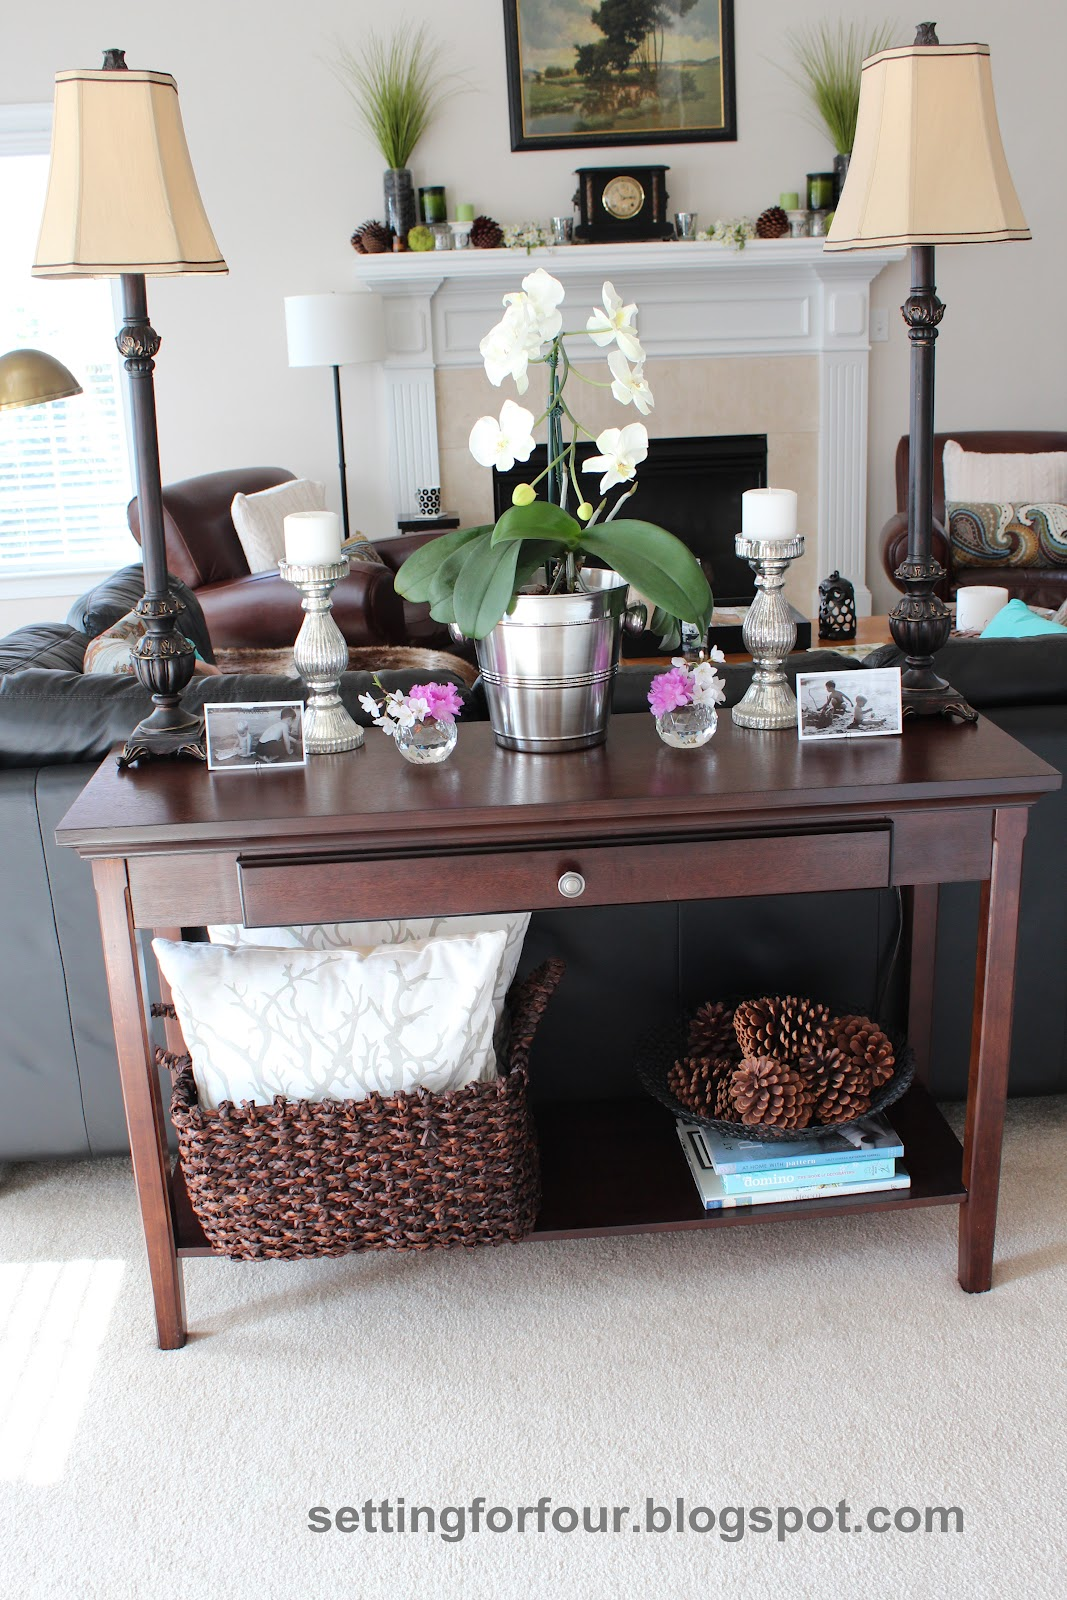 Styling a sofa table setting for four for Console table decor ideas